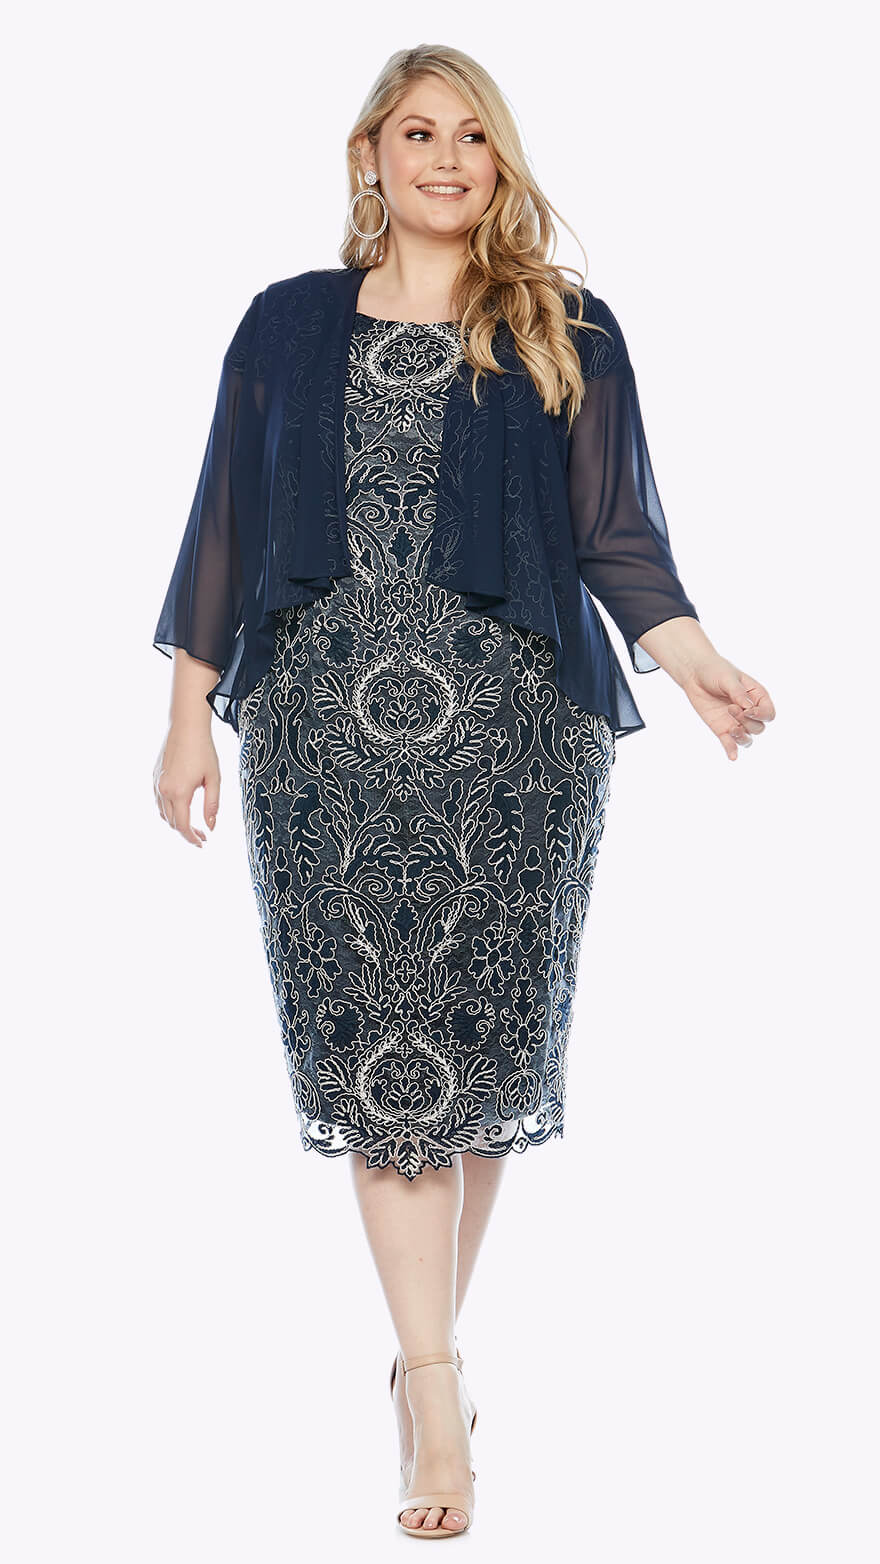 LJ0225 Cocktail corded lace dress with 3/4 chiffon waterfall jacket